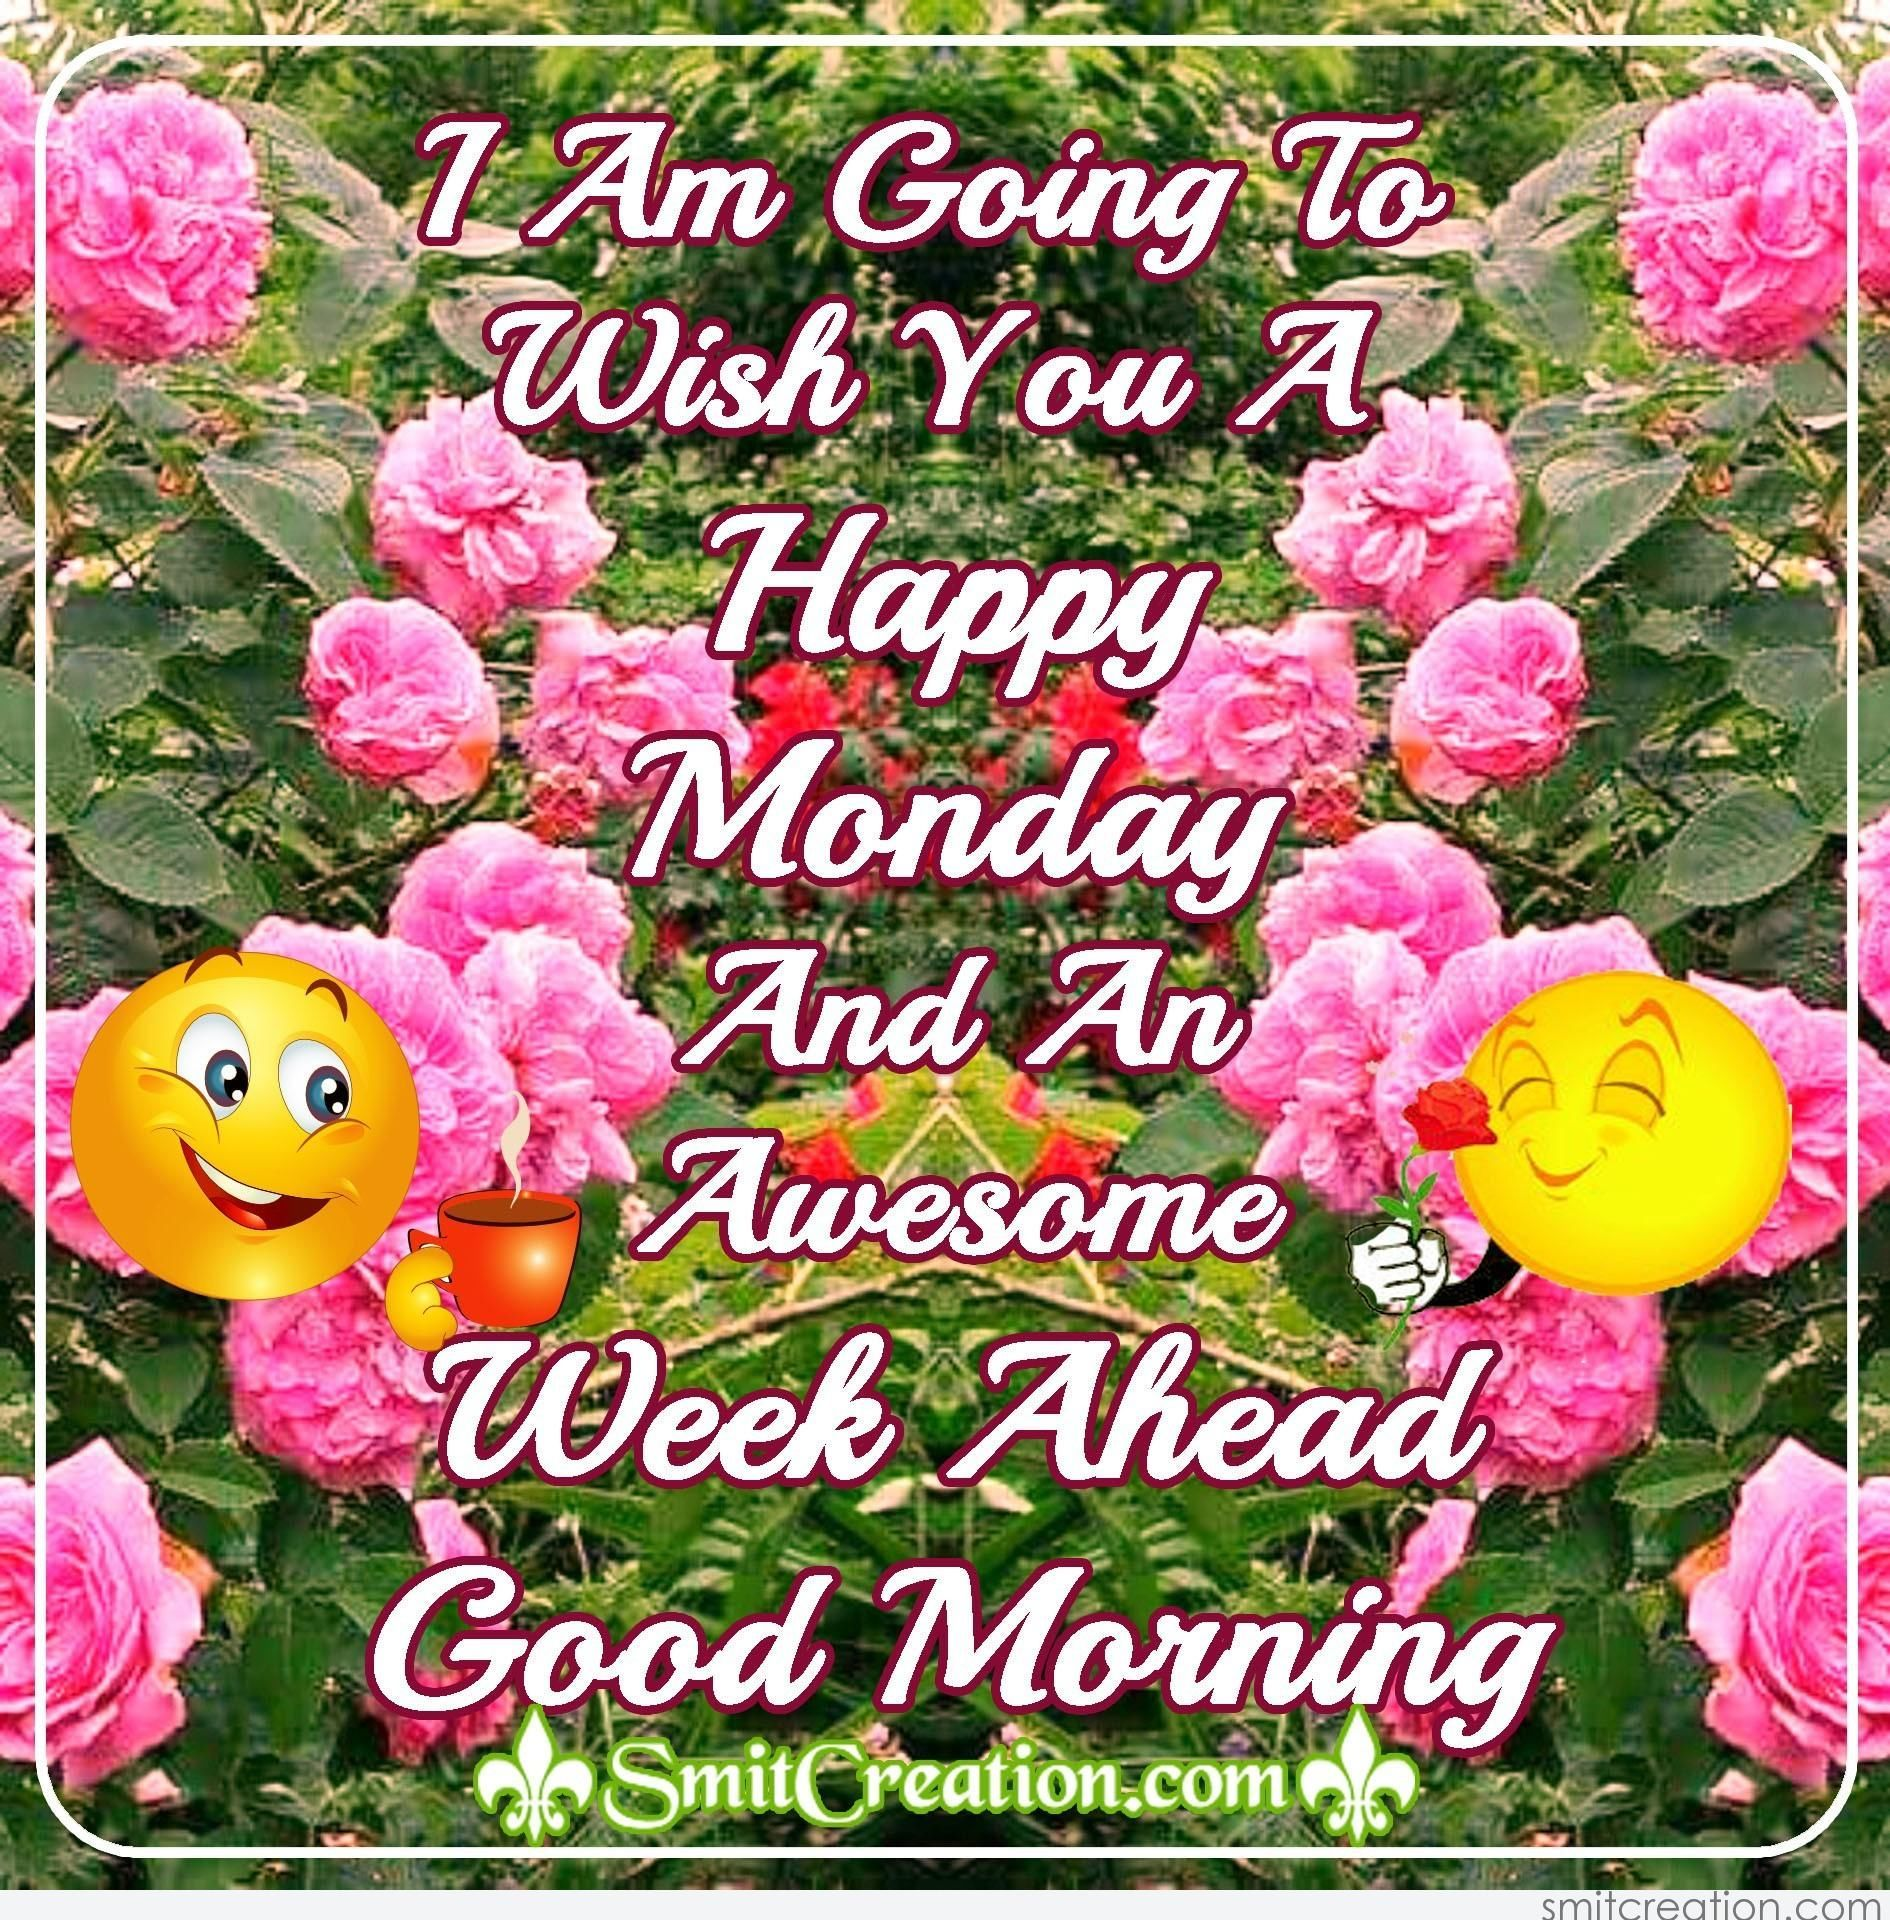 Happy monday and awesome week ahead good morning quotes happy monday and awesome week ahead good morning kristyandbryce Images